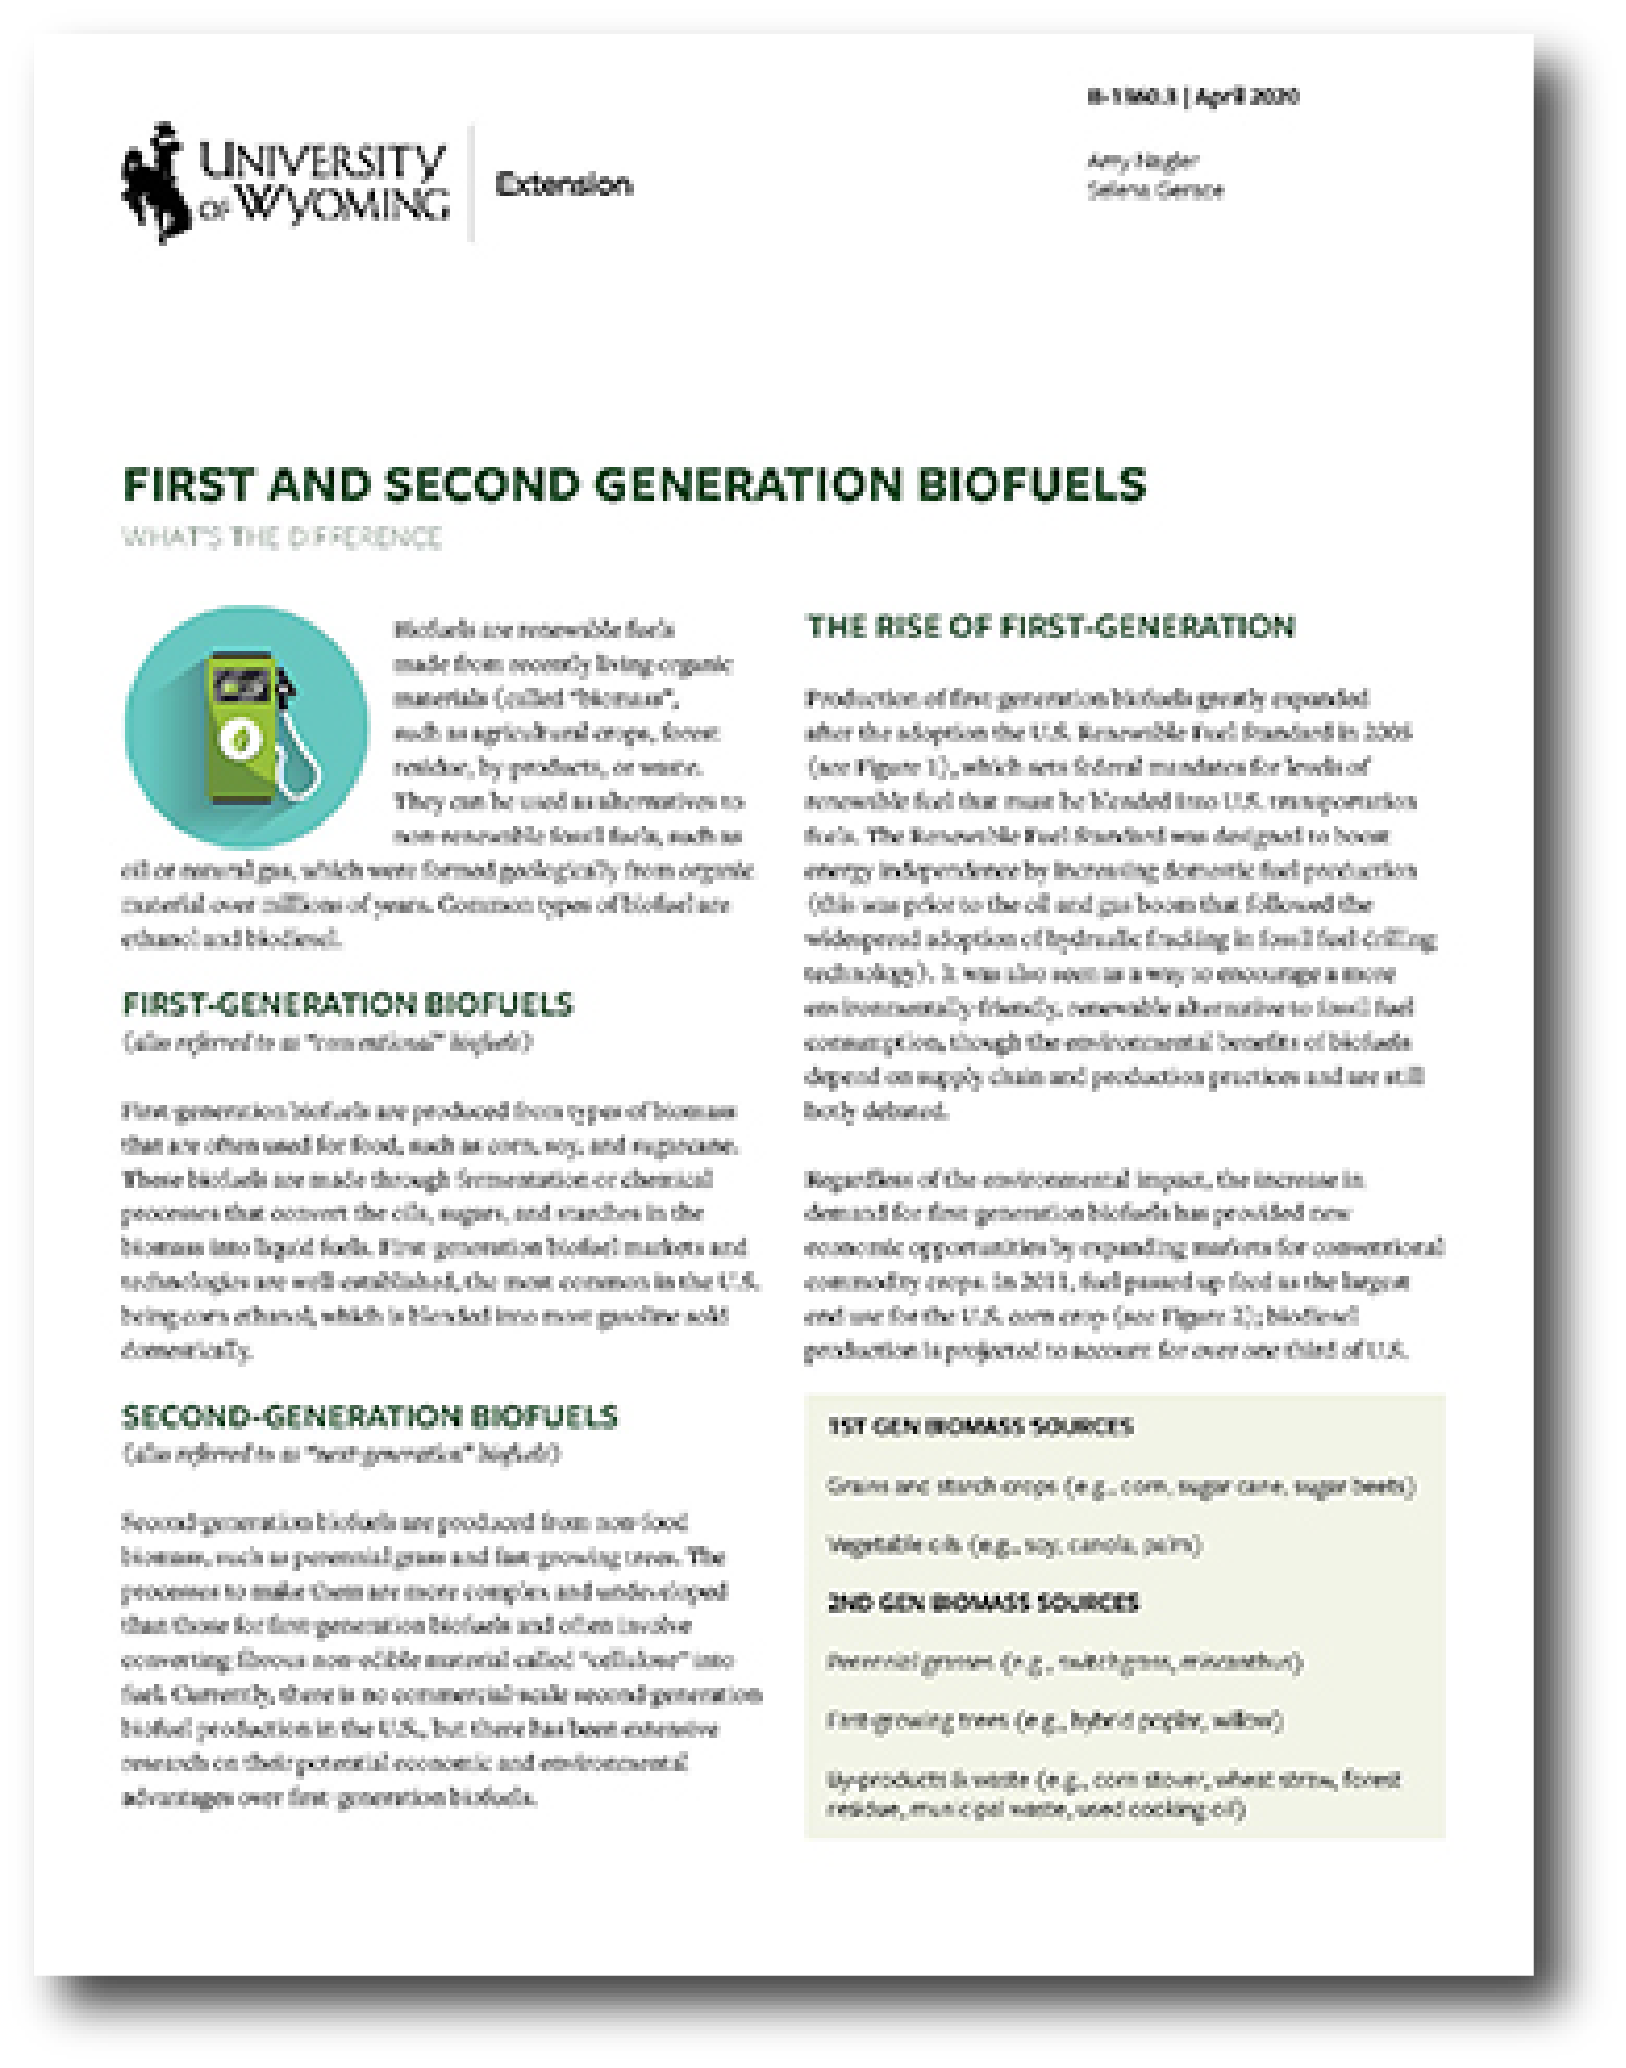 image of the first page of the 'First and Second Generation Biofuels' fact sheet